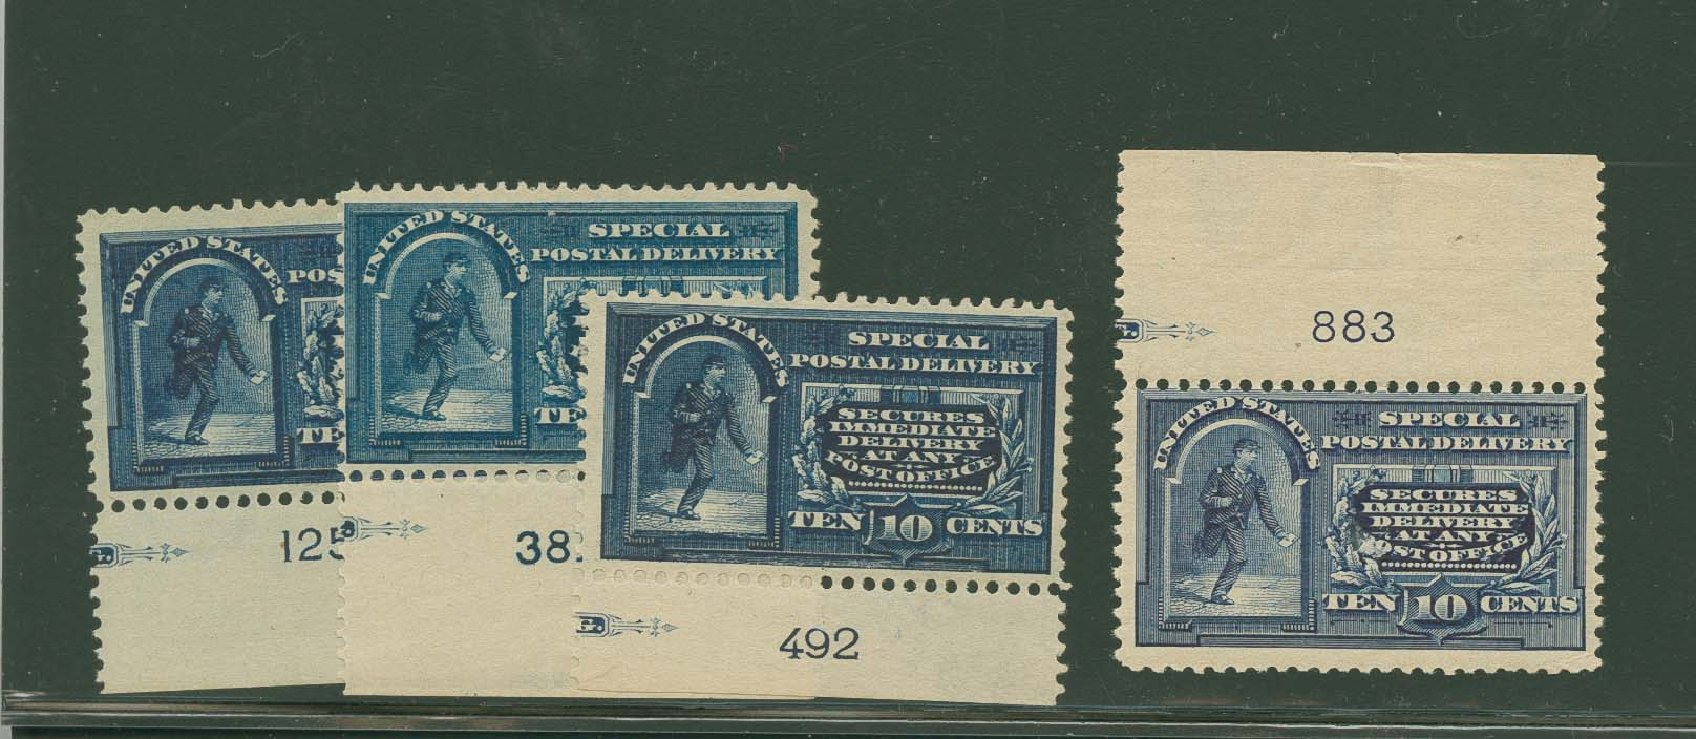 US Stamp Price Scott Catalogue # E5 - 10c 1895 Special Delivery. H.R. Harmer, Oct 2014, Sale 3006, Lot 1497